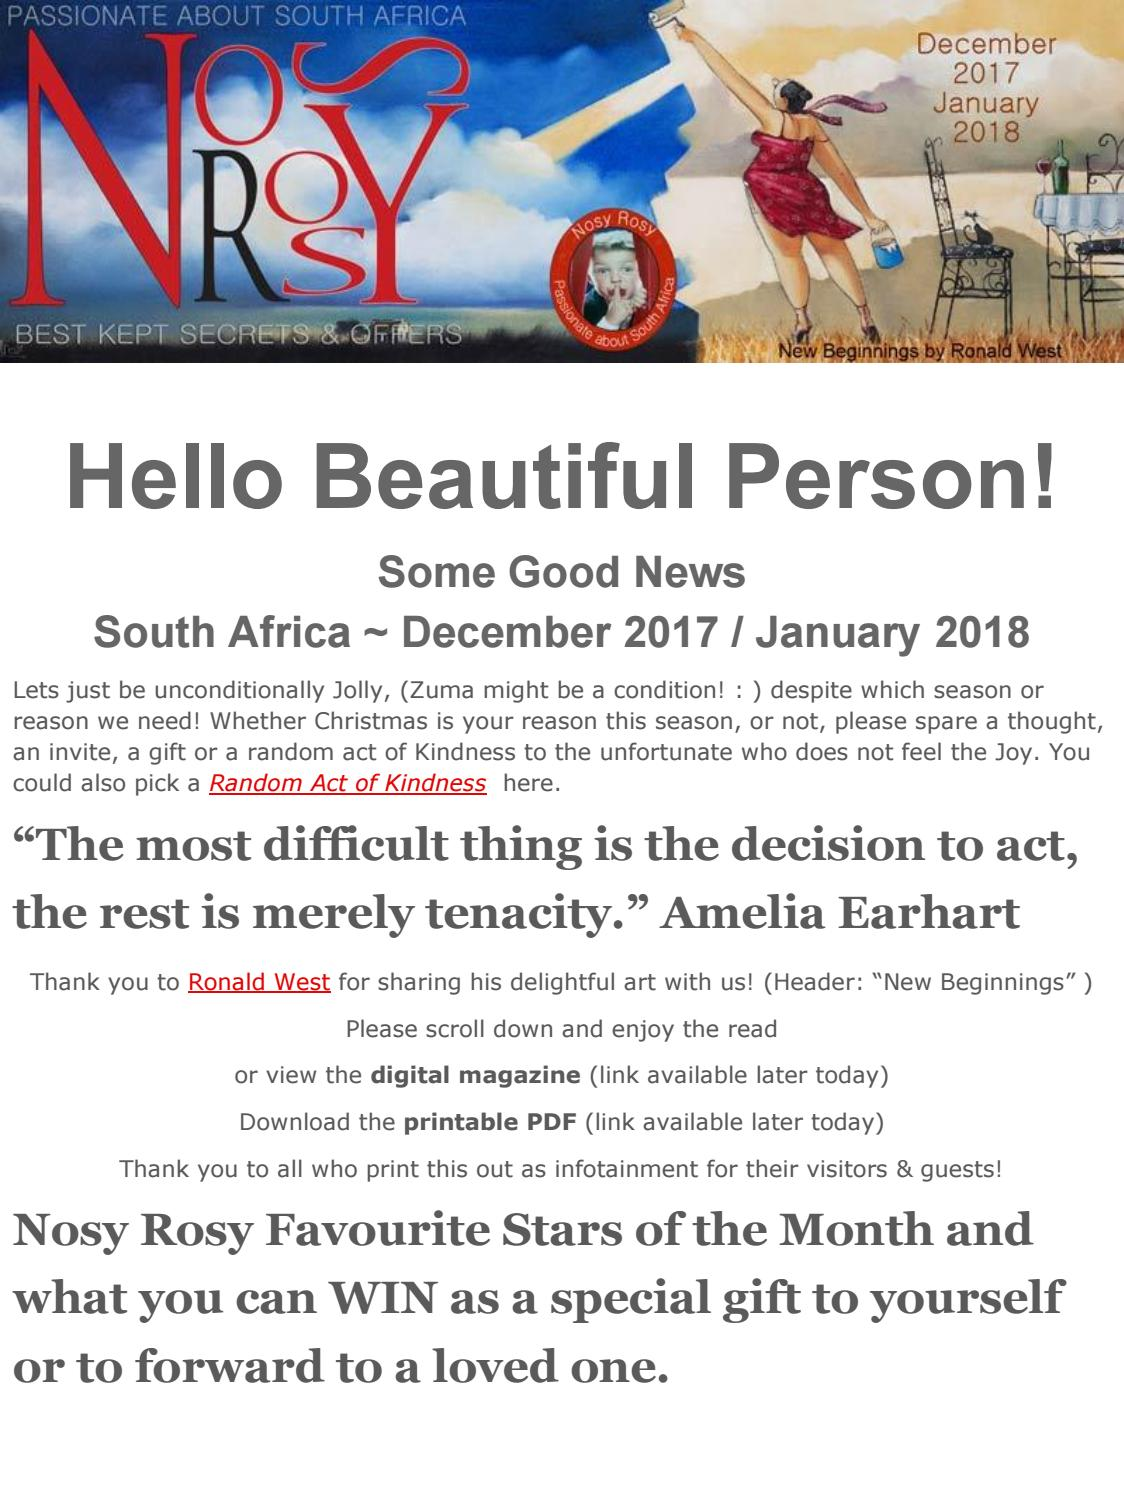 Some Good News South Africa December 2017 January 2018 By Nosy Rosy Issuu